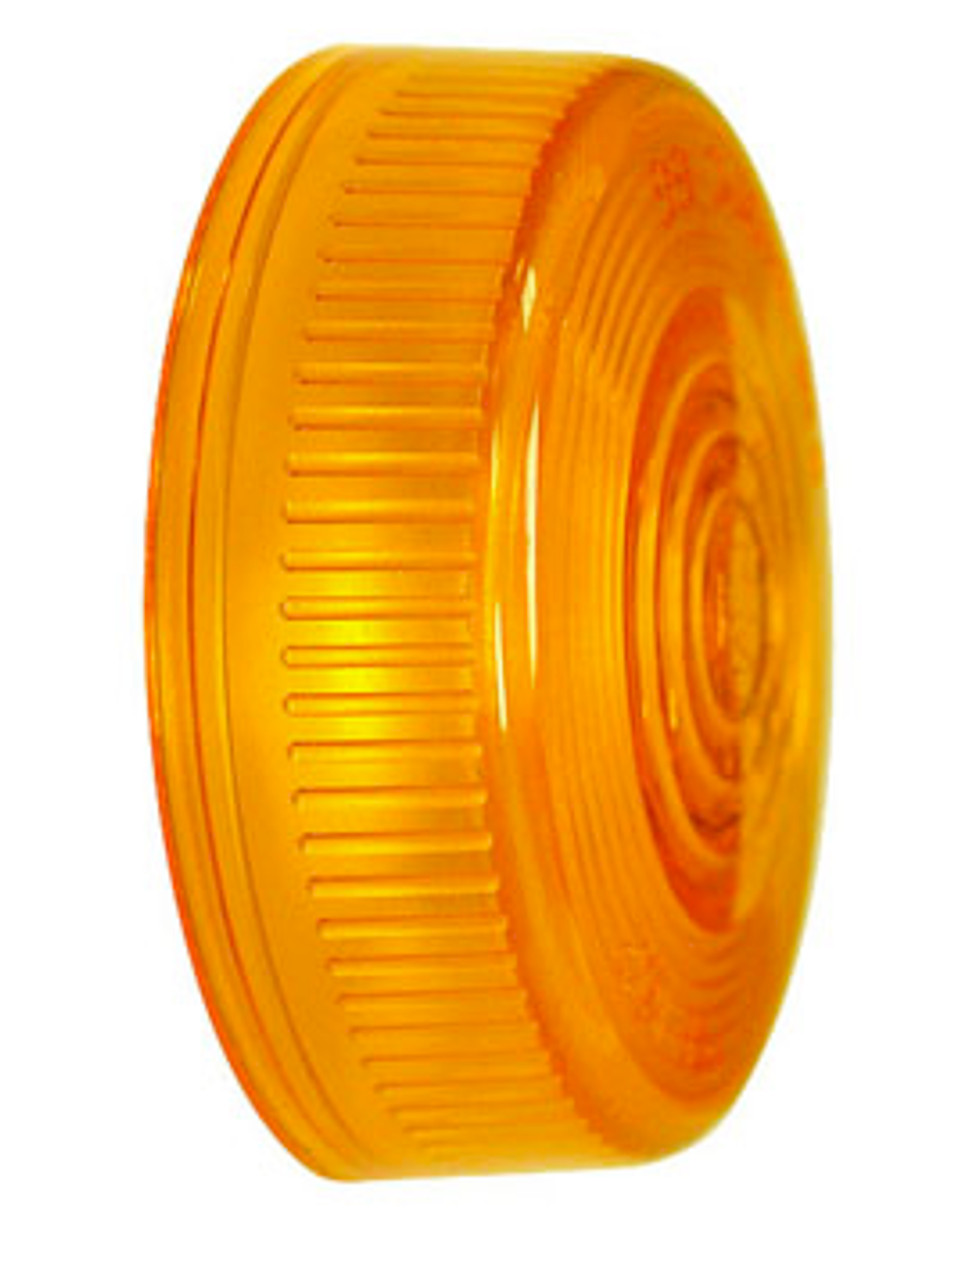 102-15A --- Peterson Replacement Amber Round Lens